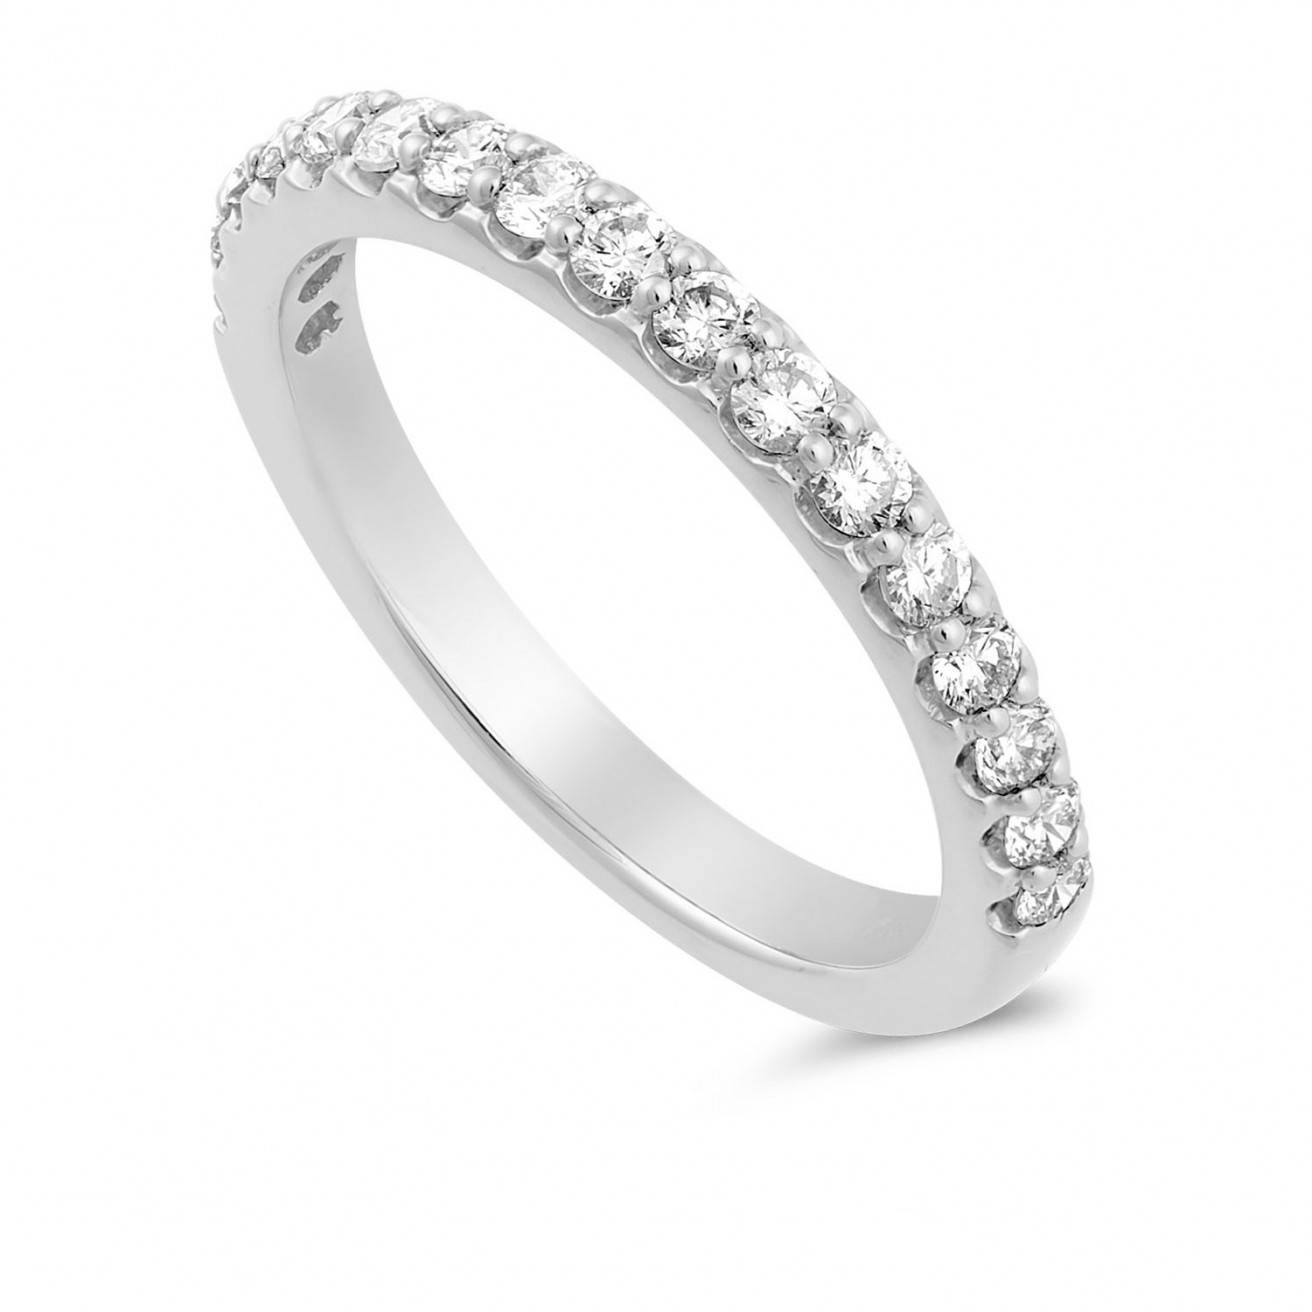 Buy Platinum Wedding Bands Online – Fraser Hart Intended For Recent Platnium Wedding Bands (Gallery 13 of 15)